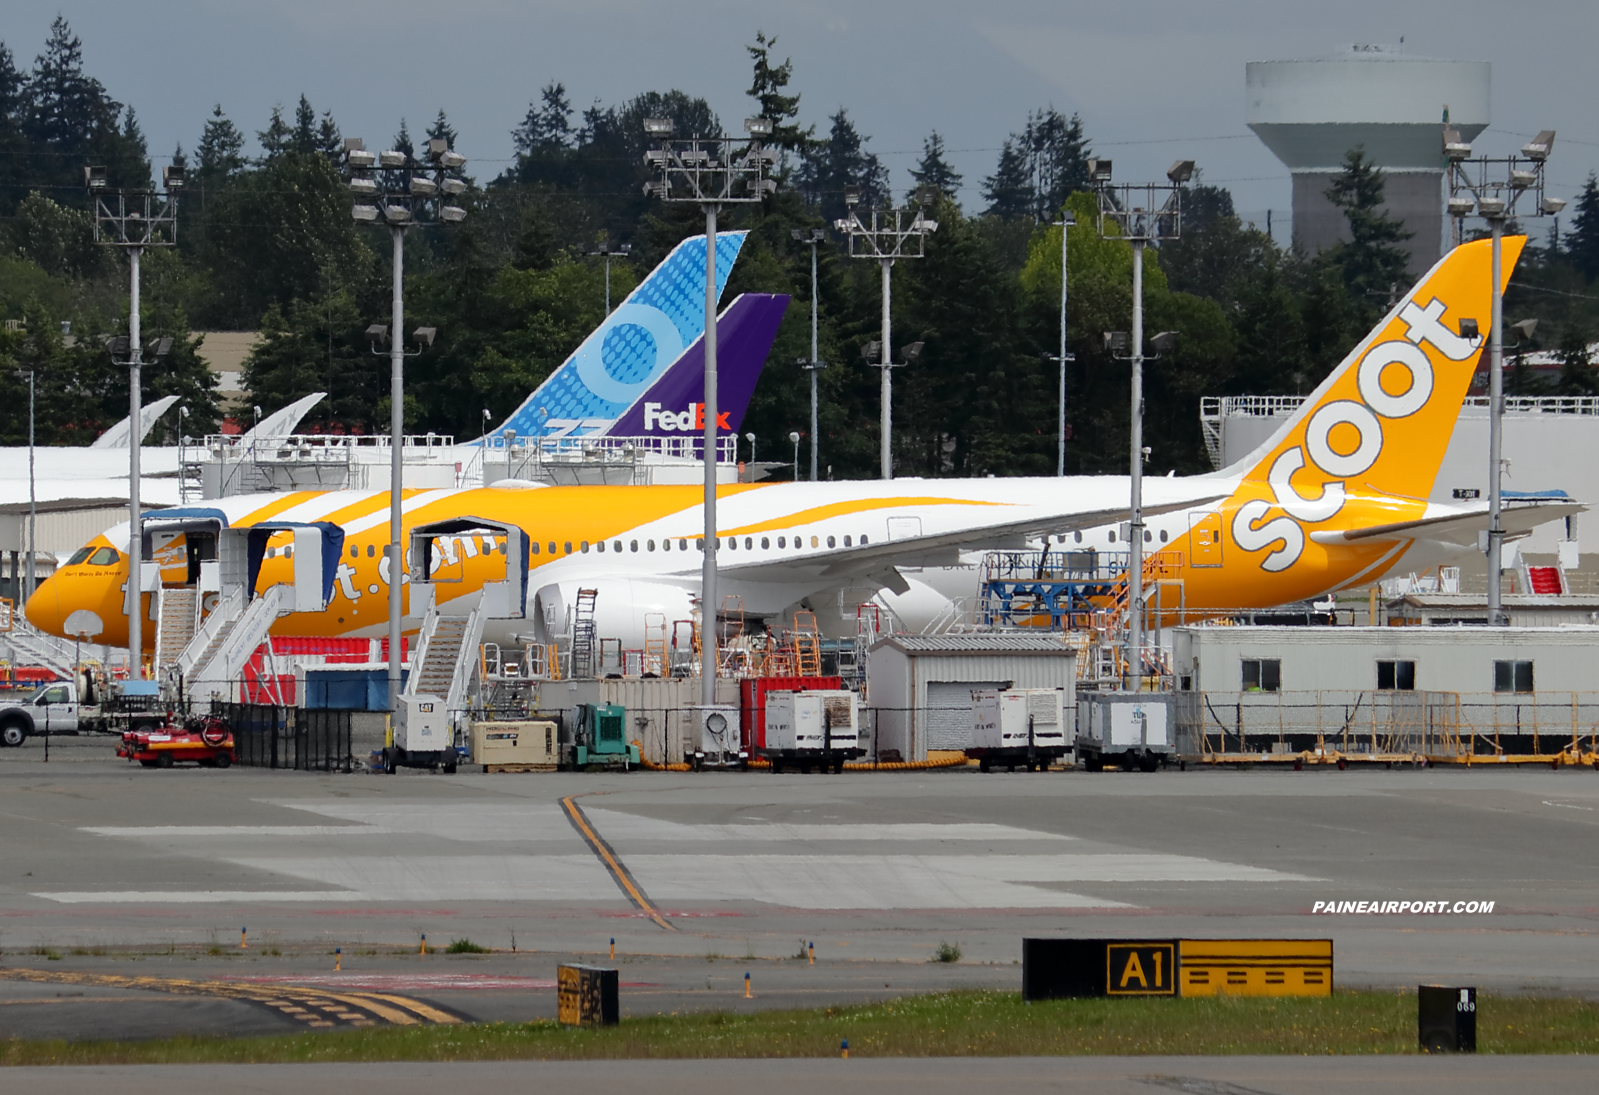 Scoot 787-8 9V-OFL at KPAE Paine Field